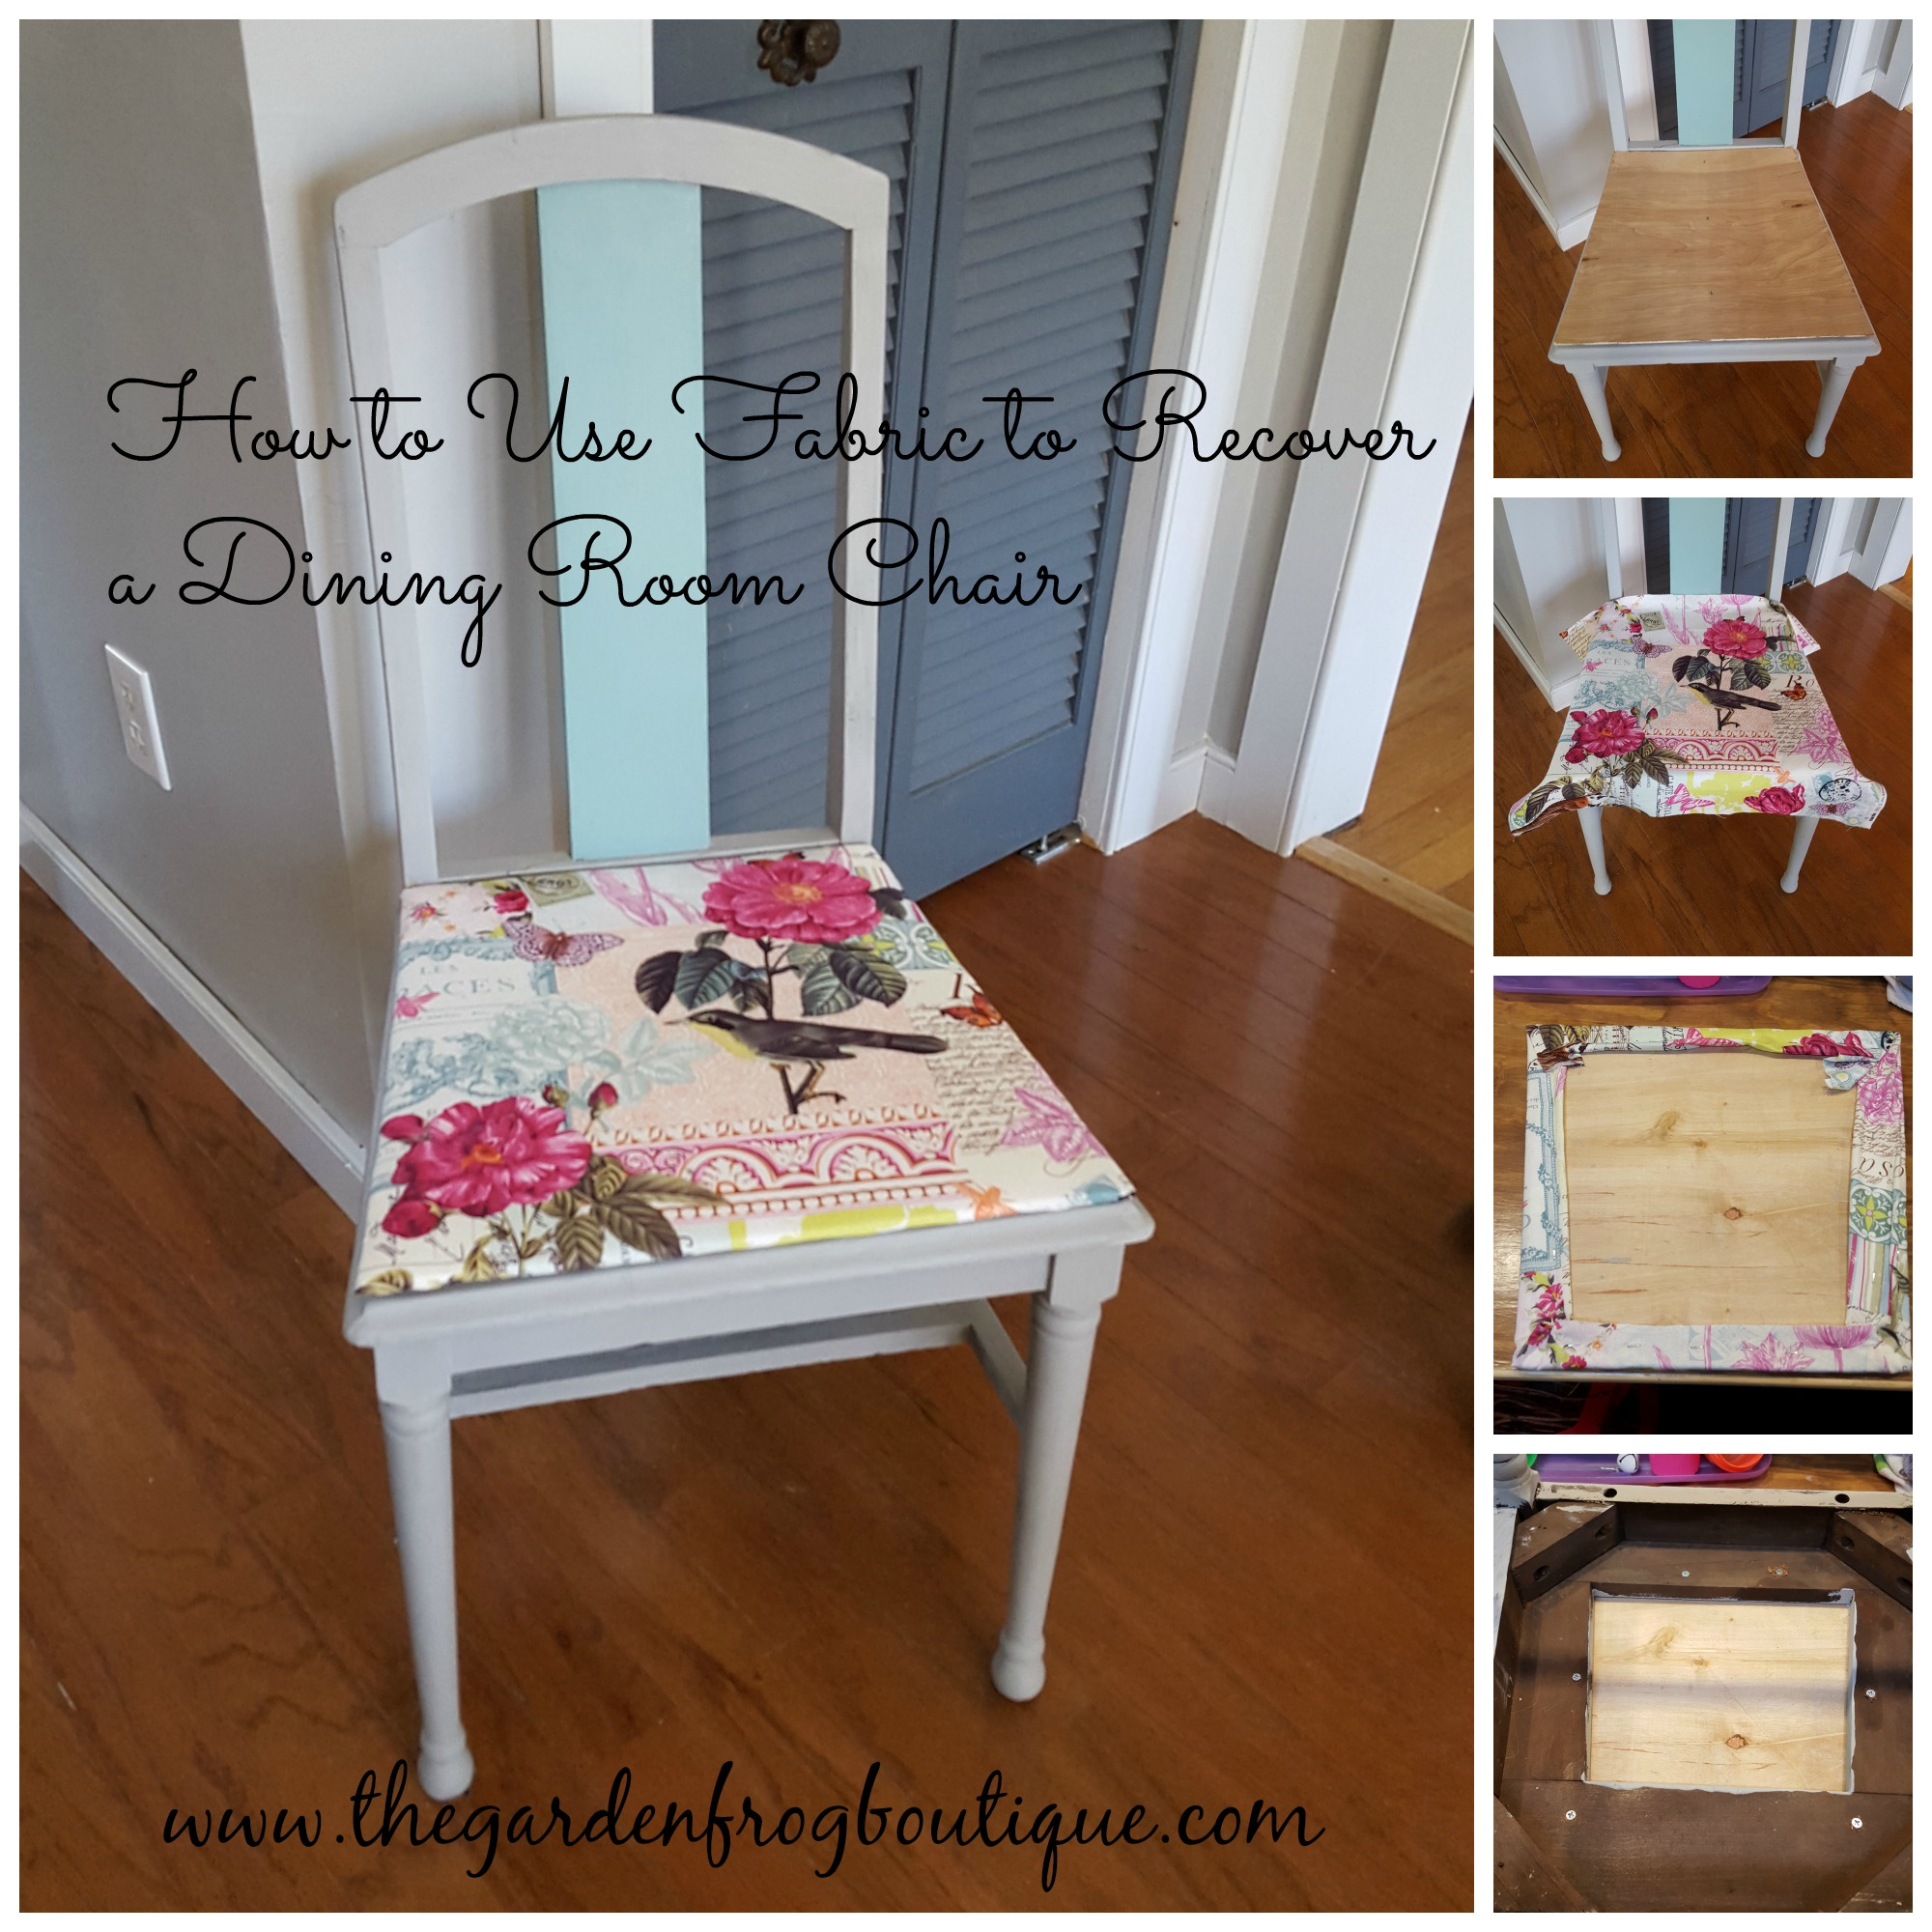 Dining Room Chair Fabric How To Use Fabric To Recover A Dining Room Chair The Garden Frog